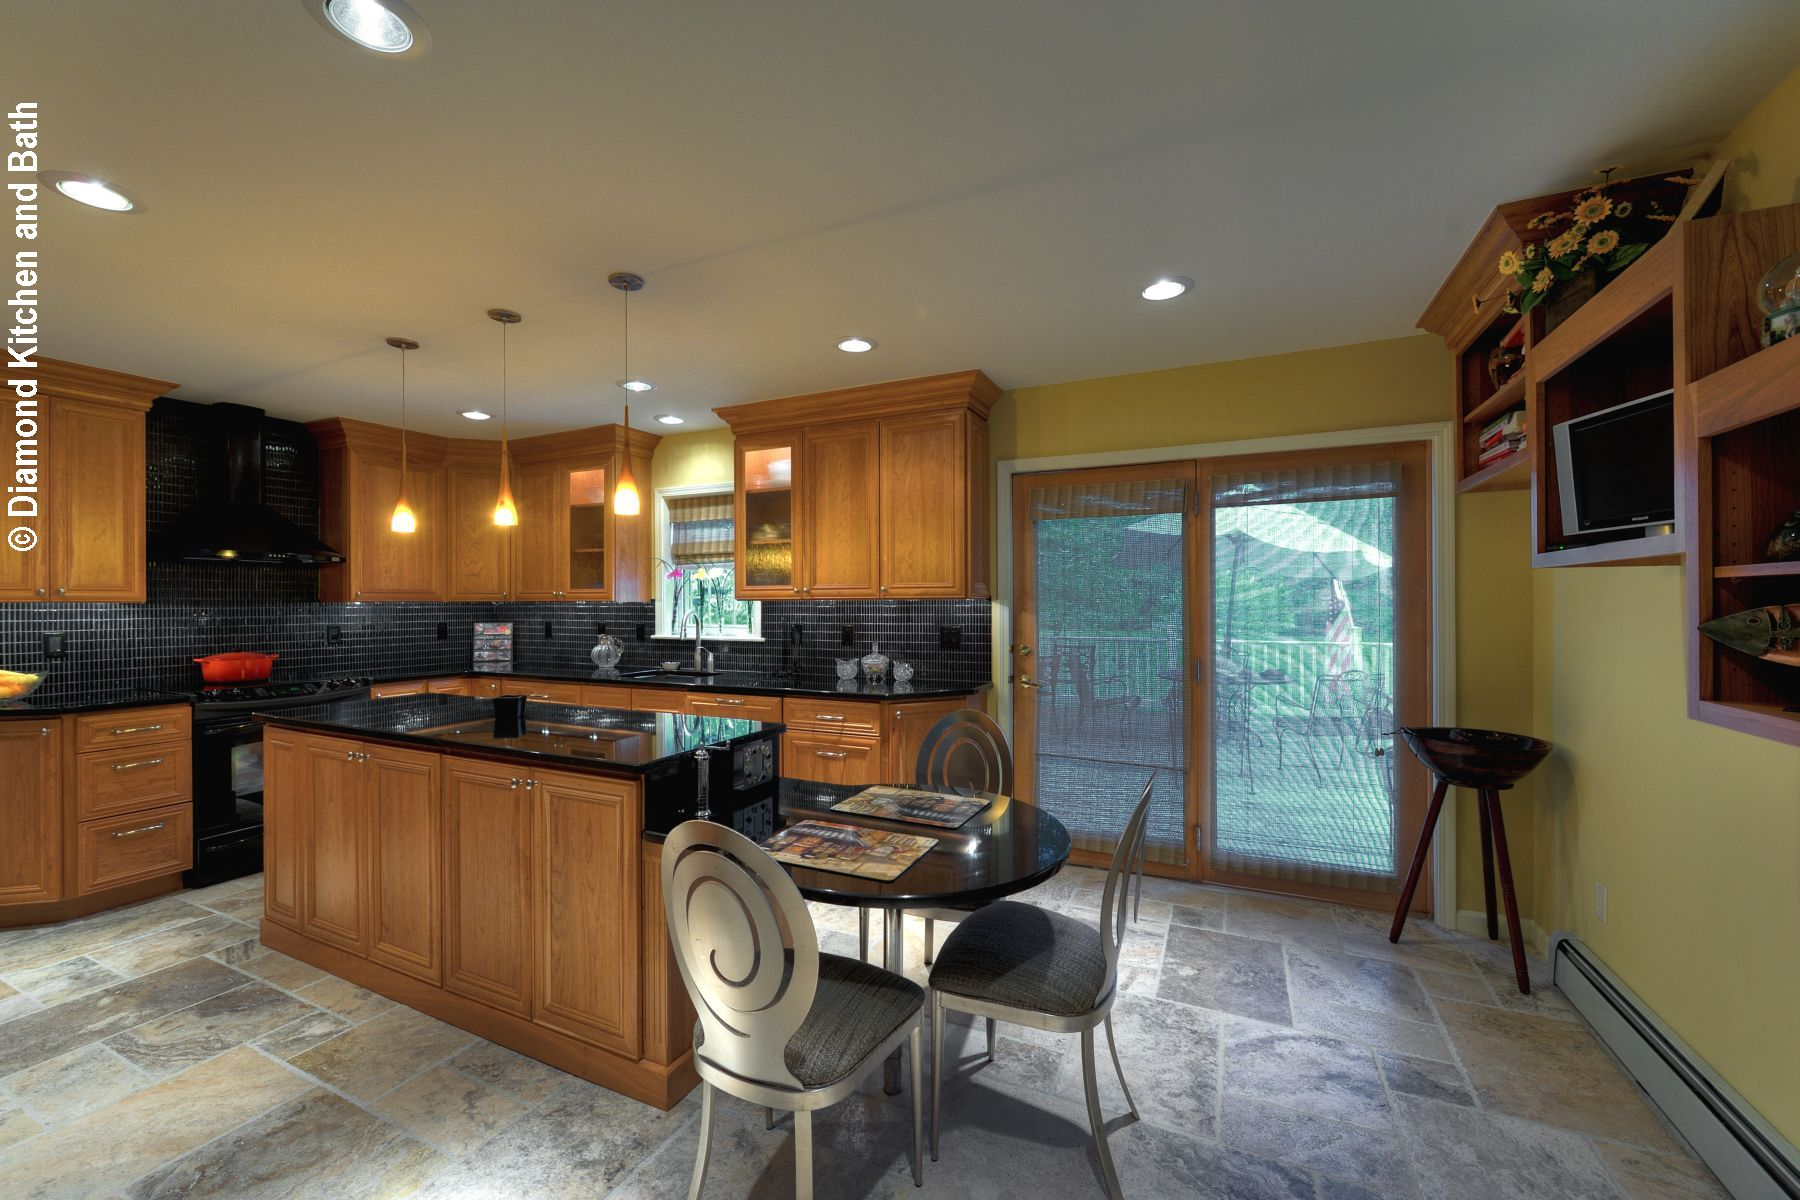 Kitchen Remodeling Virtual Tour in Wrightstown, PA